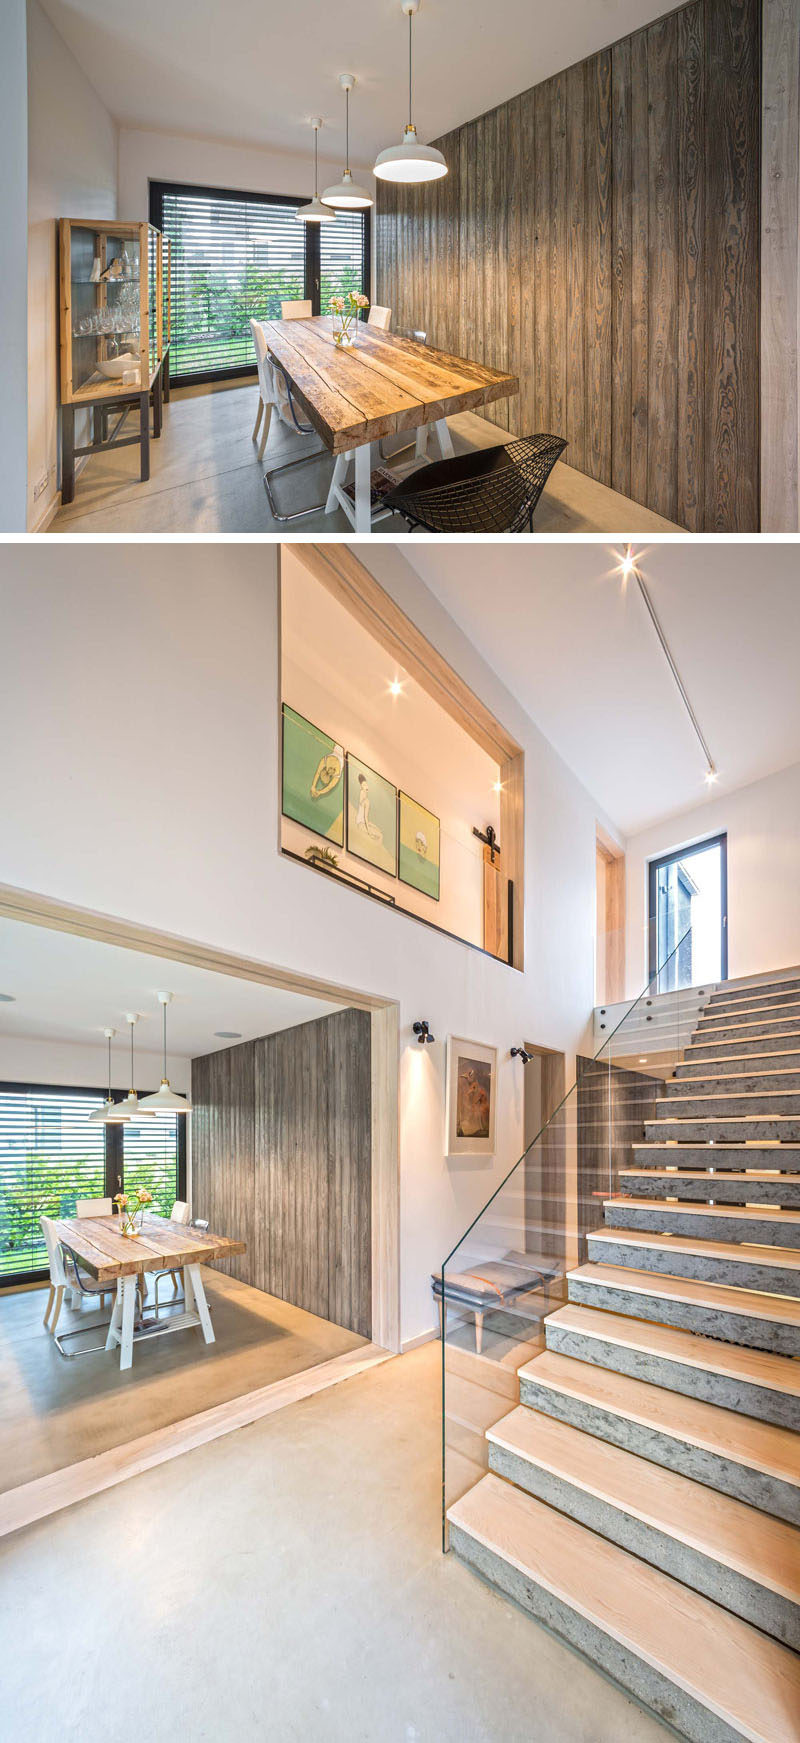 This dining room has a wooden feature wall and access to the backyard.